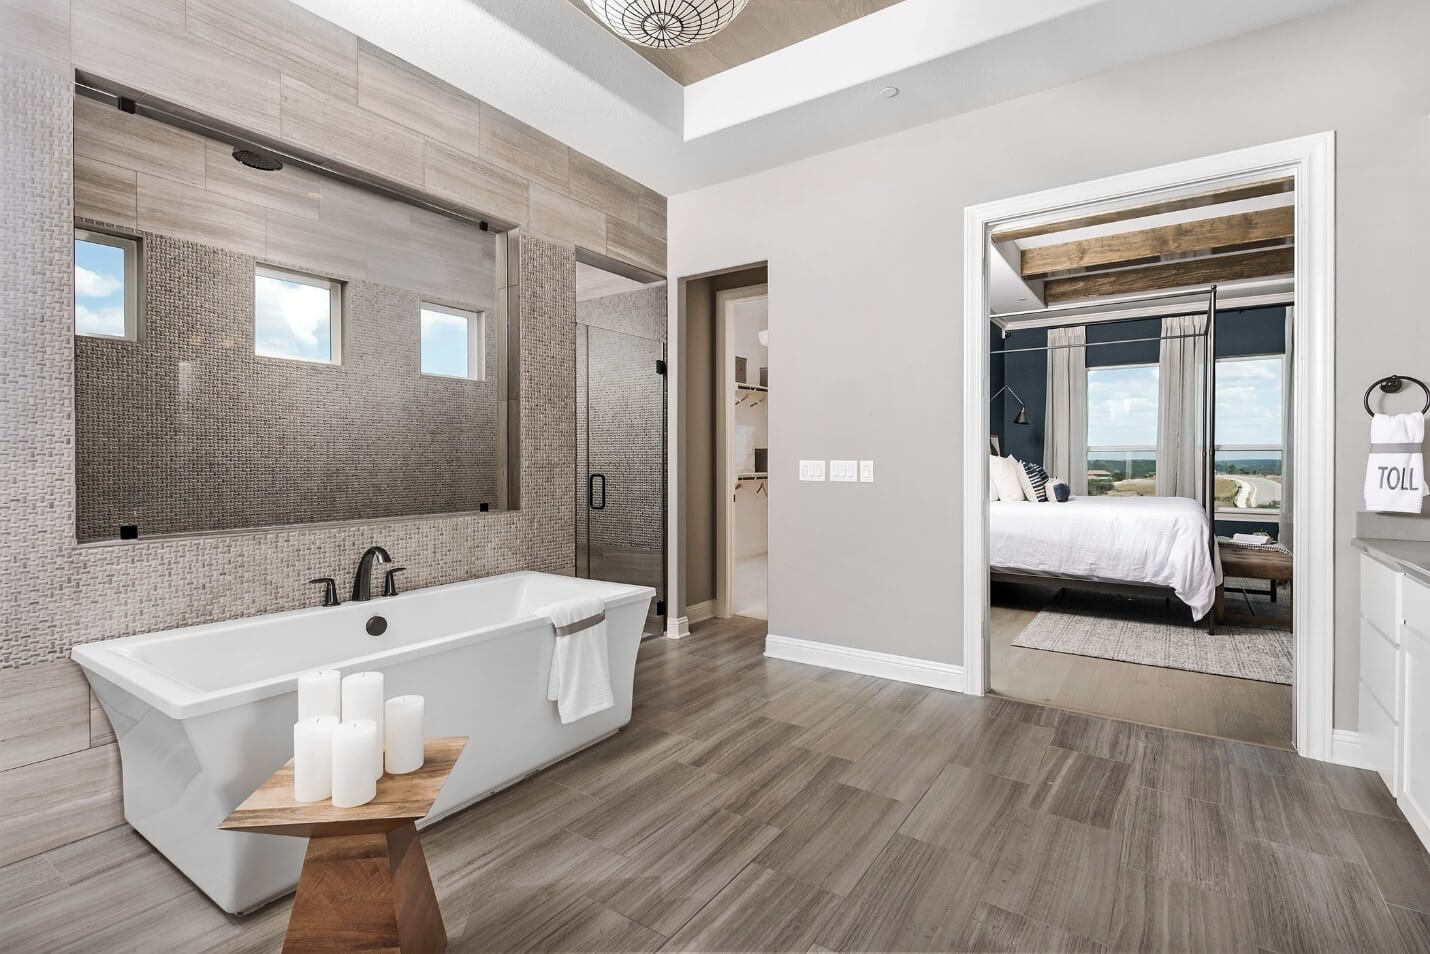 9 Amazing Bathroom Design Trends For 2019 Travisso Blog